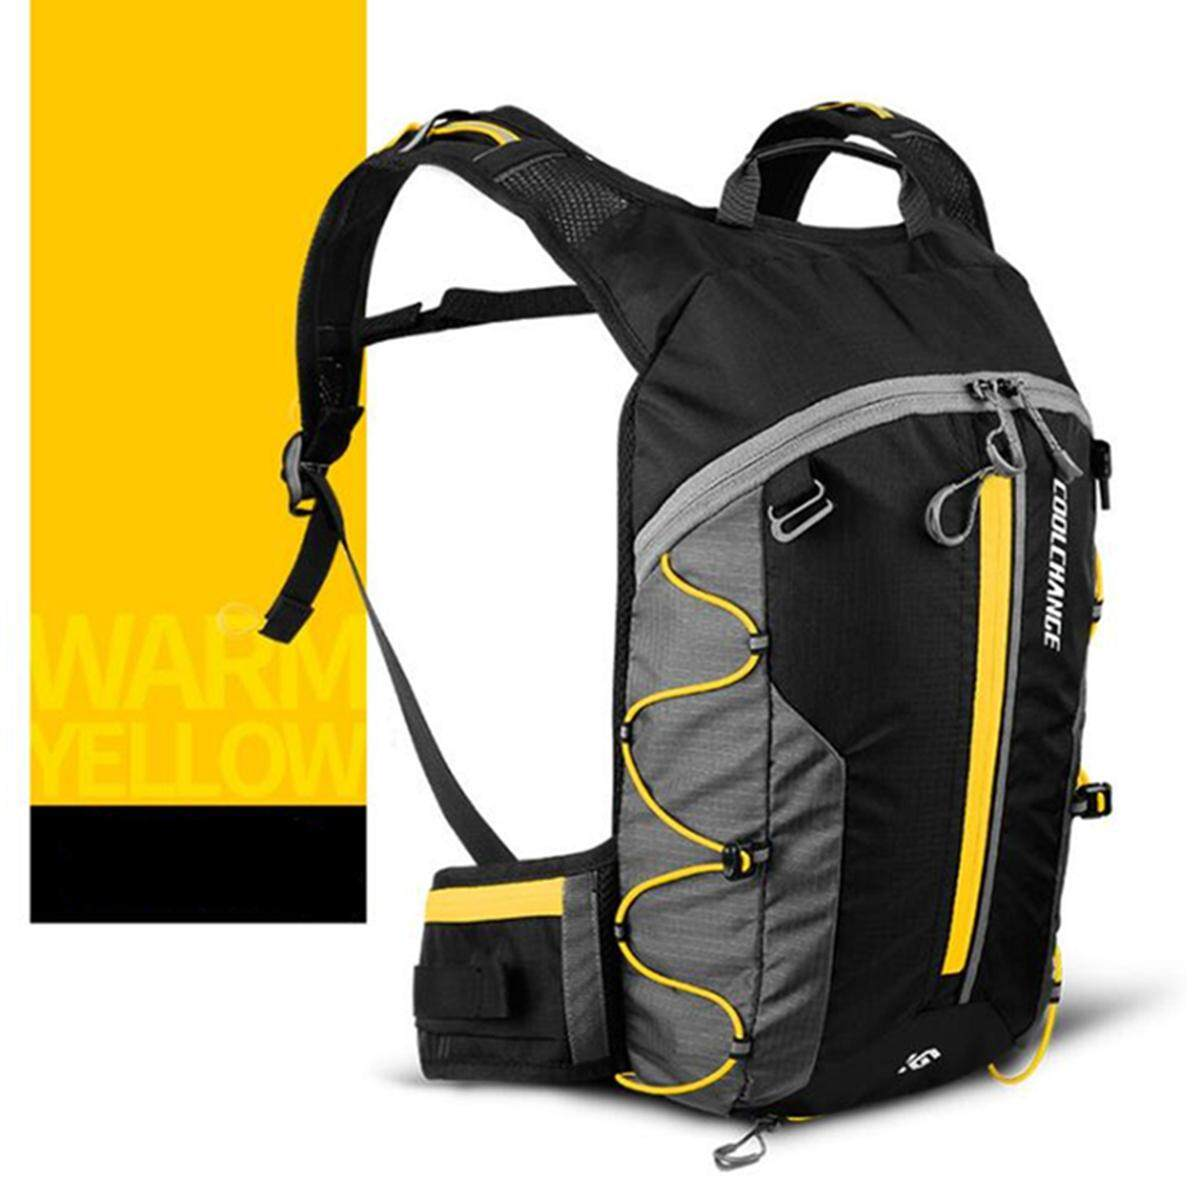 13f36976f 10L MTB Bicycle Cycling Backpack Hydration Pack Hiking Camping Water  Bladder Bag